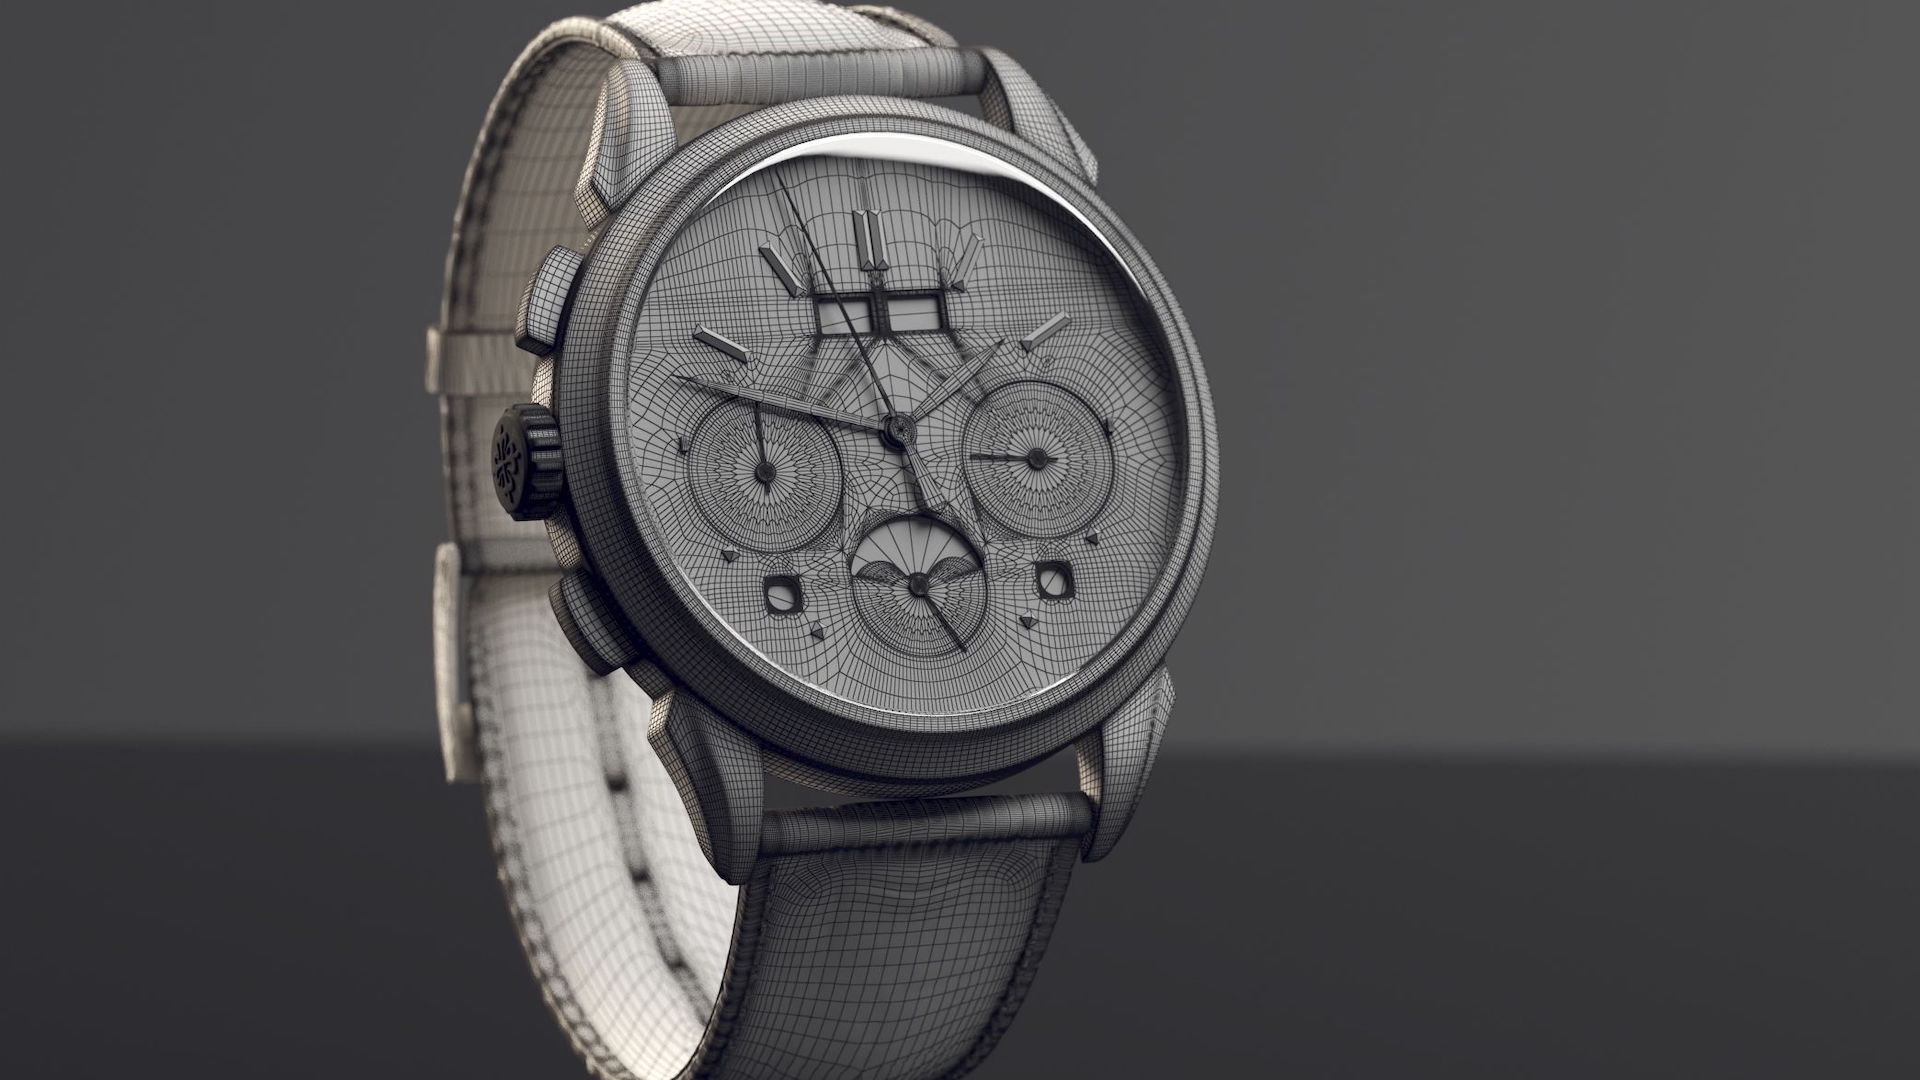 Optimized 3D Model of a Watch